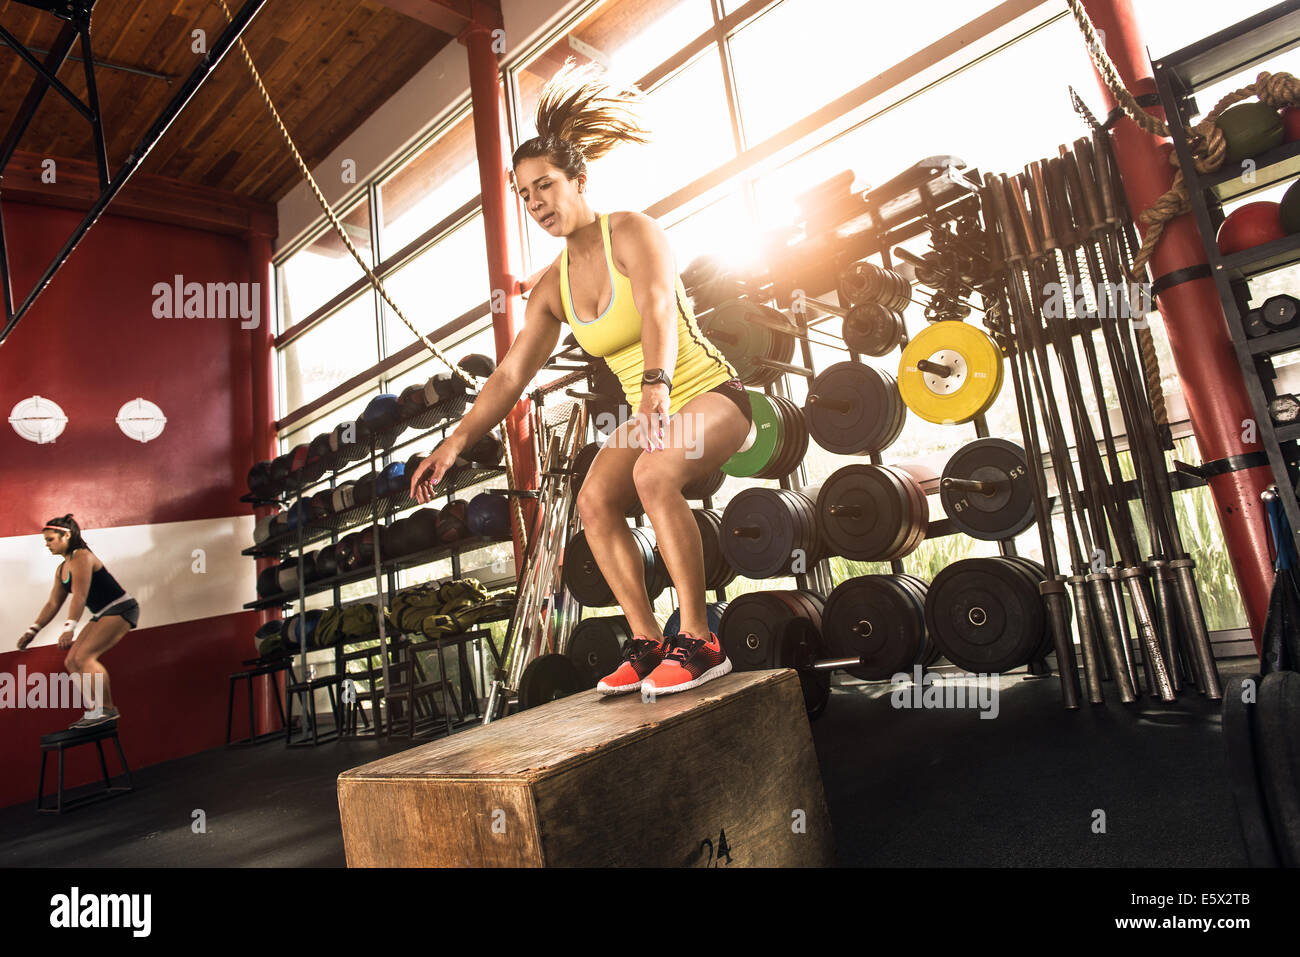 Bodybuilders working out in gym - Stock Image